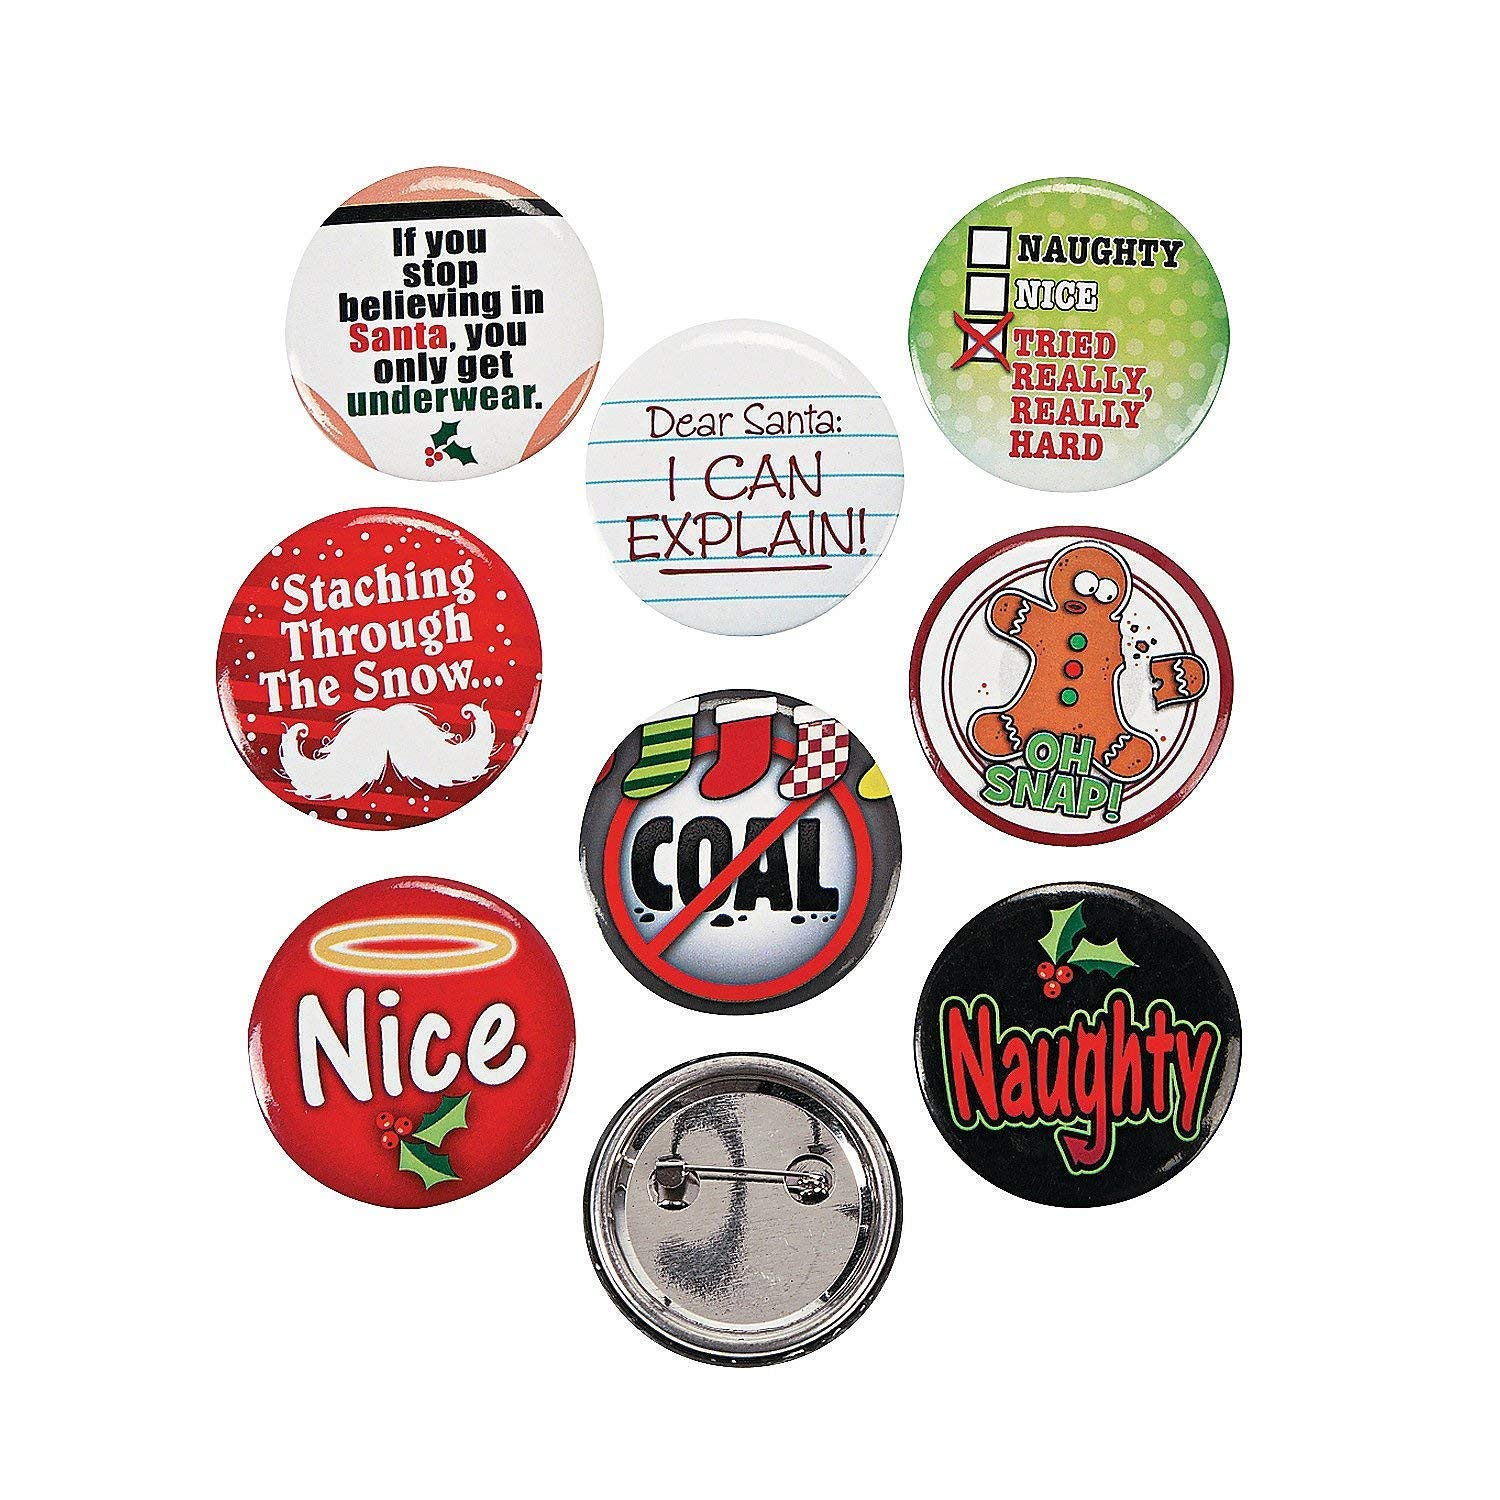 Christmas Sayings Funny.24 2 Dozen Funny Christmas Sayings Button Pins Approx 1 25 Metal New